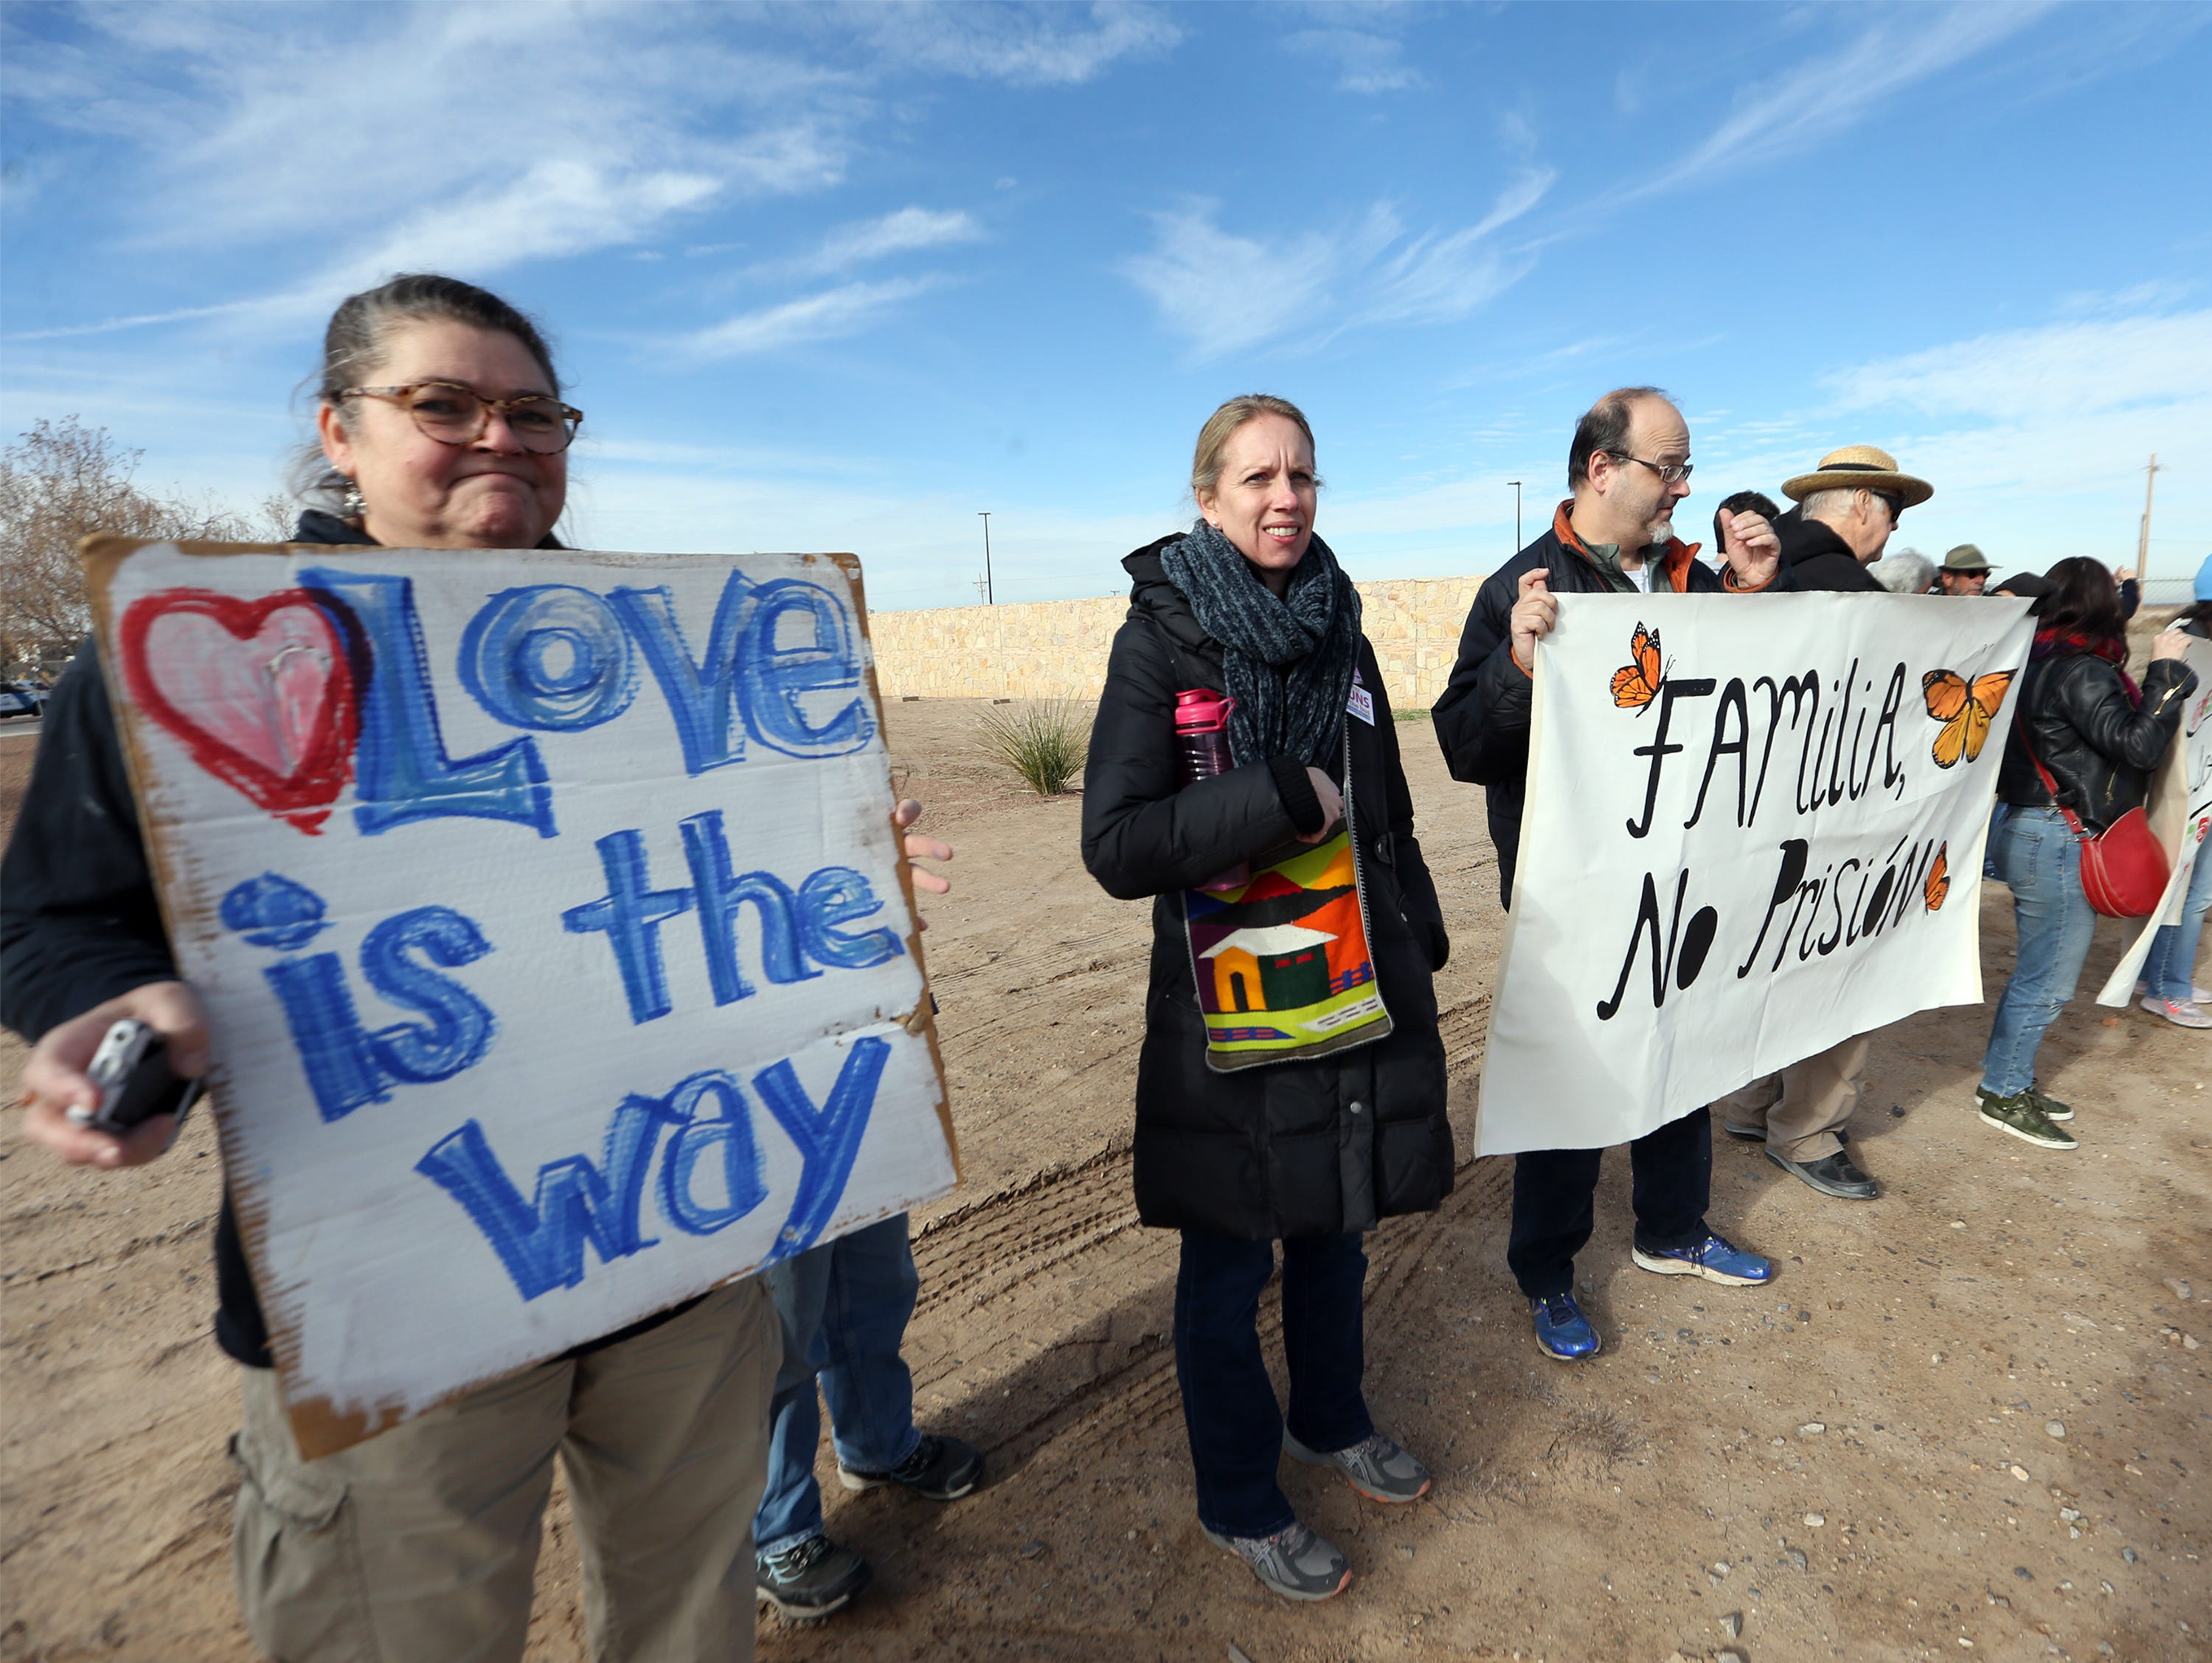 About 75 people, some holding signs, held a protest outside the gates to the Tornillo international port of entry Saturday.